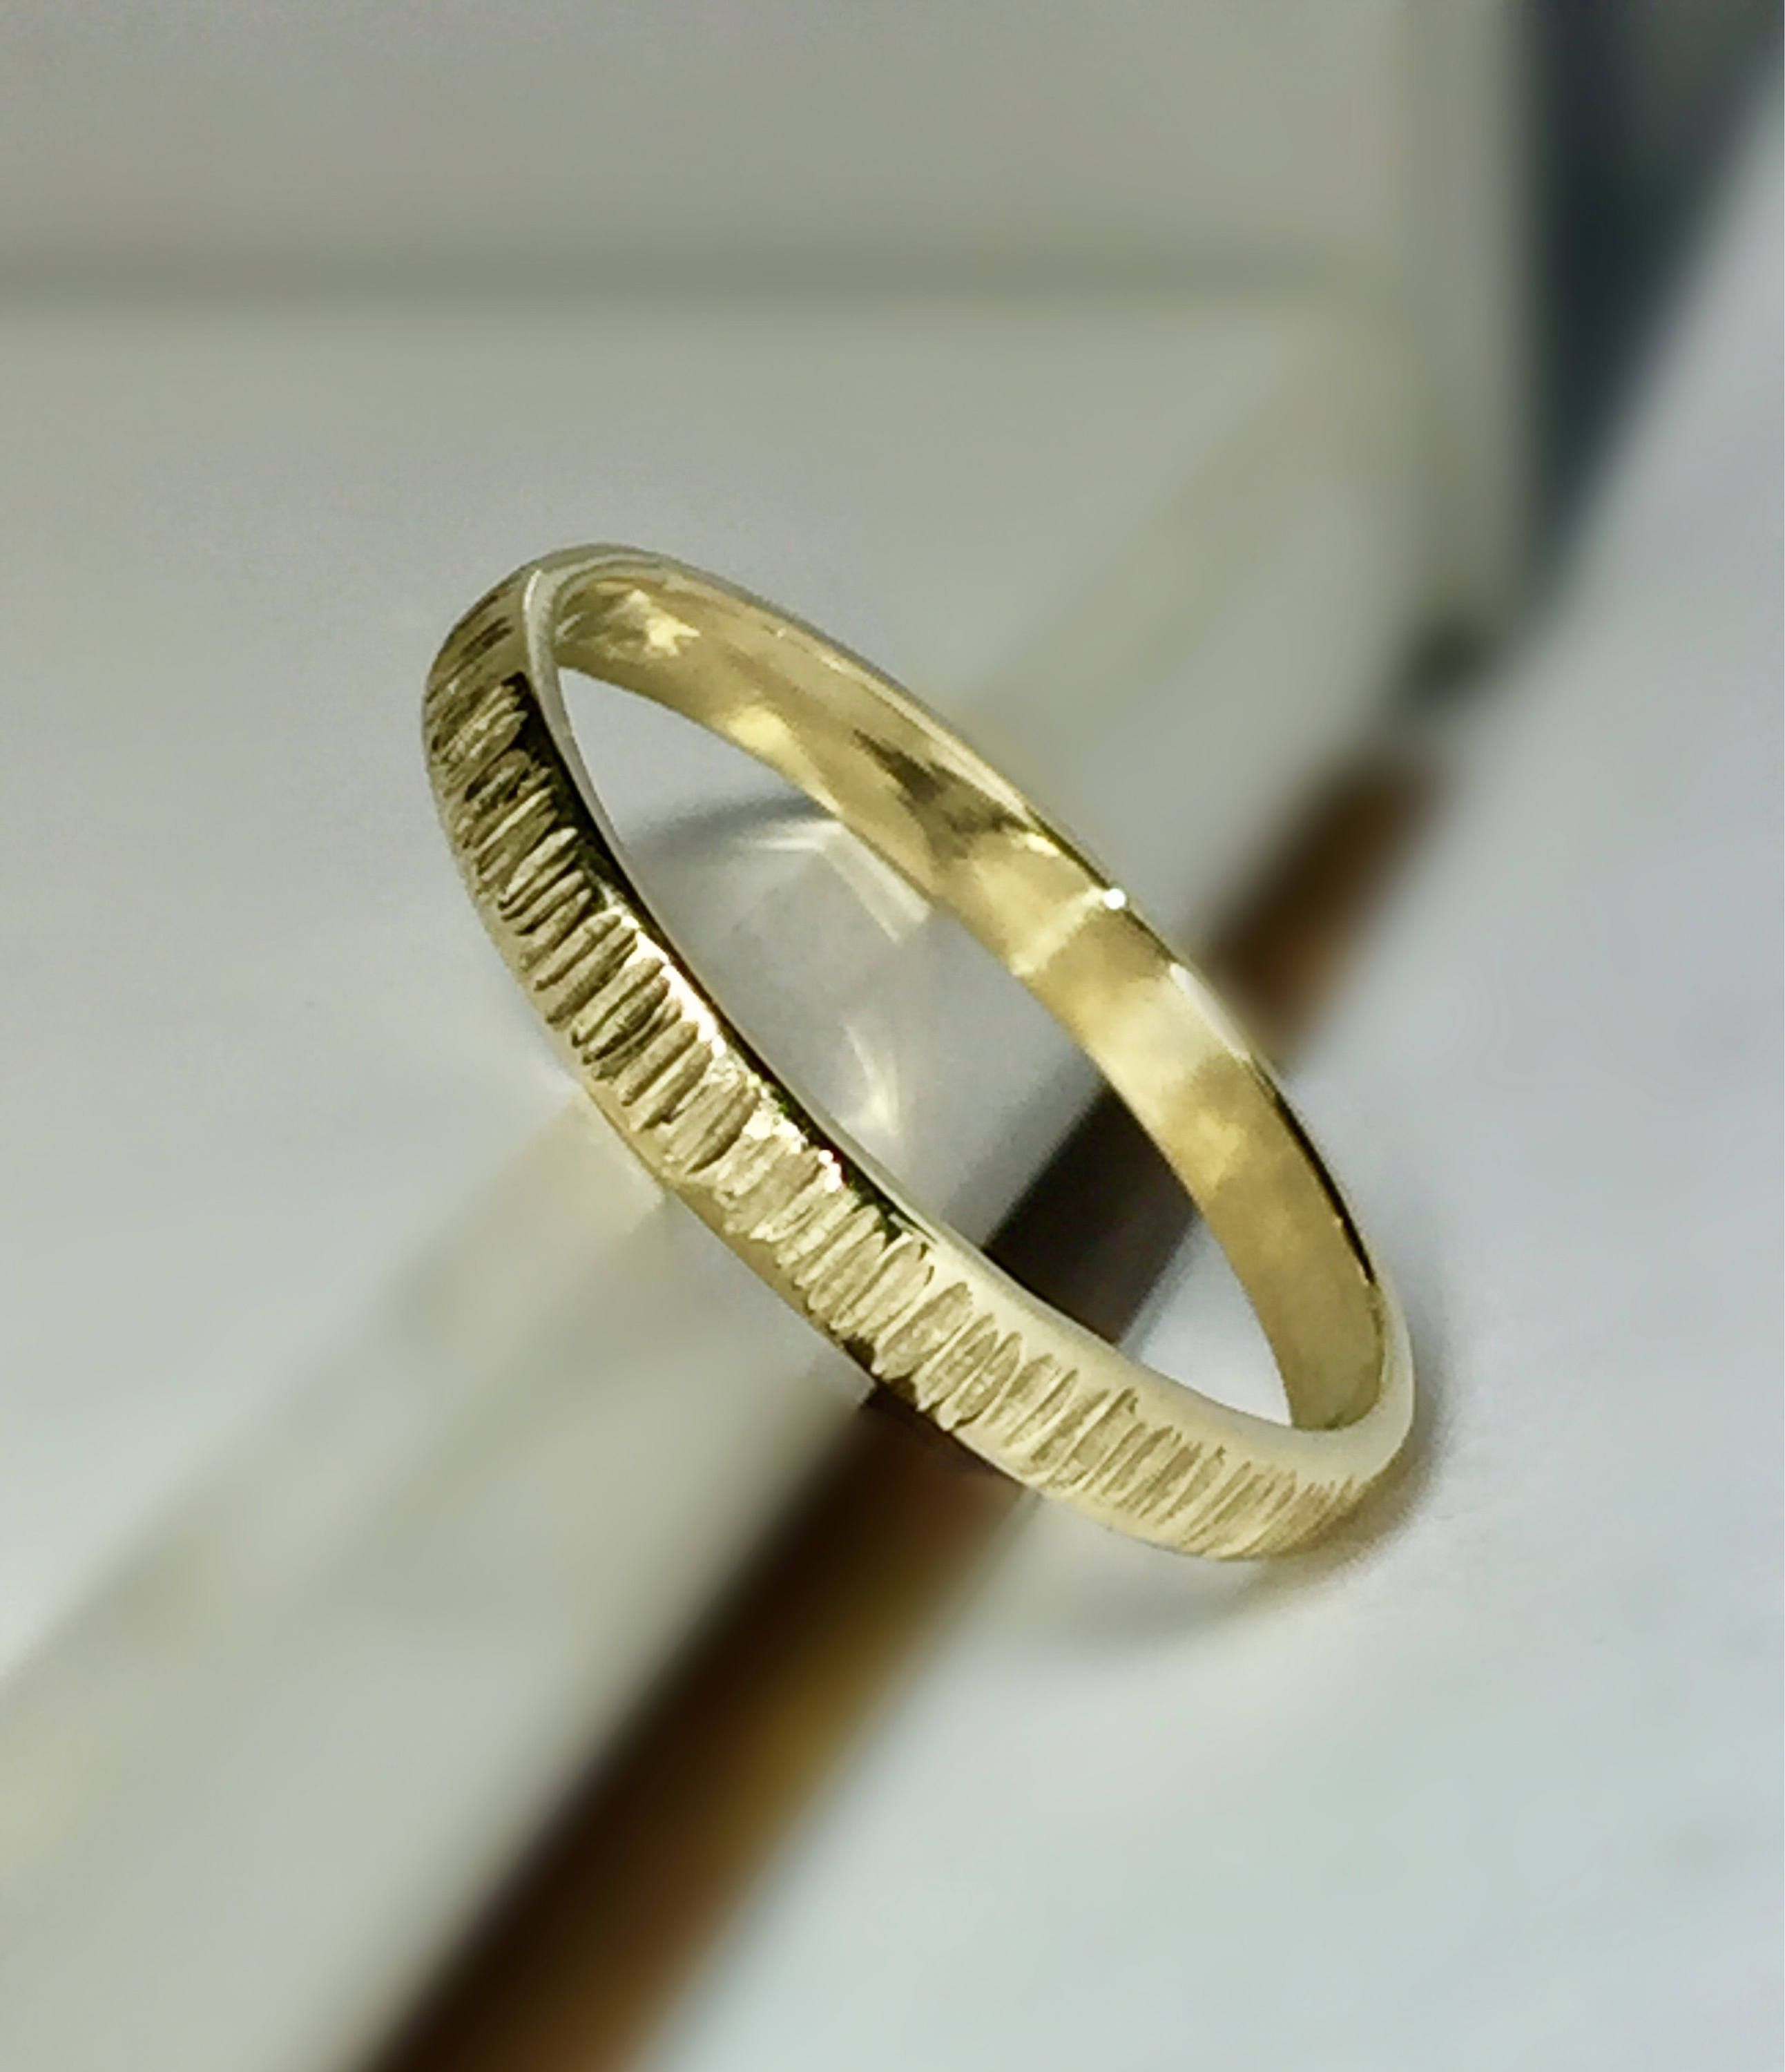 japan fine of rings french skillfully wedding best band rh ring bands solid stamped braided gold